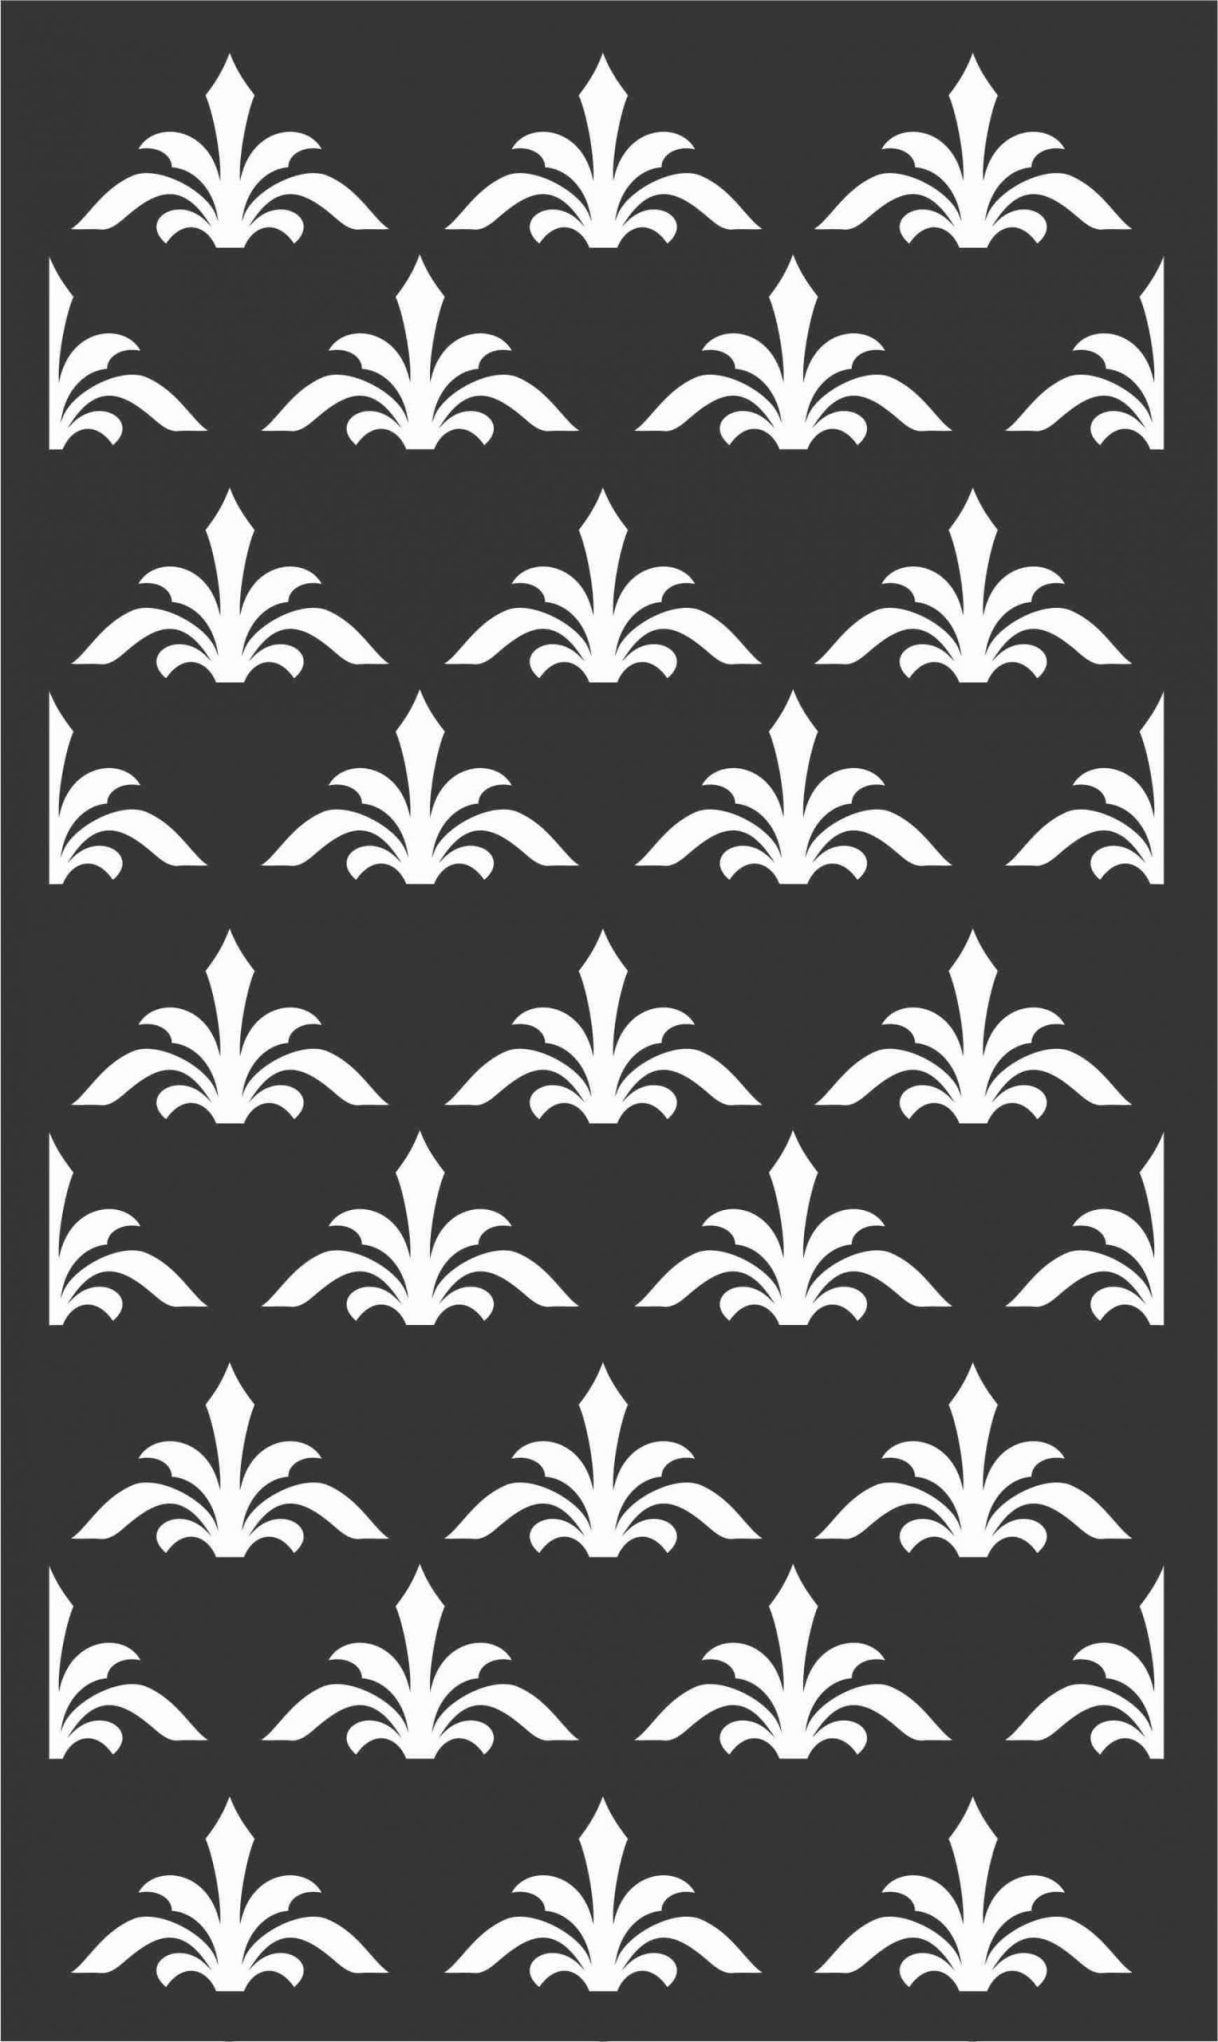 Floral Screen Patterns Design 66 Free DXF File